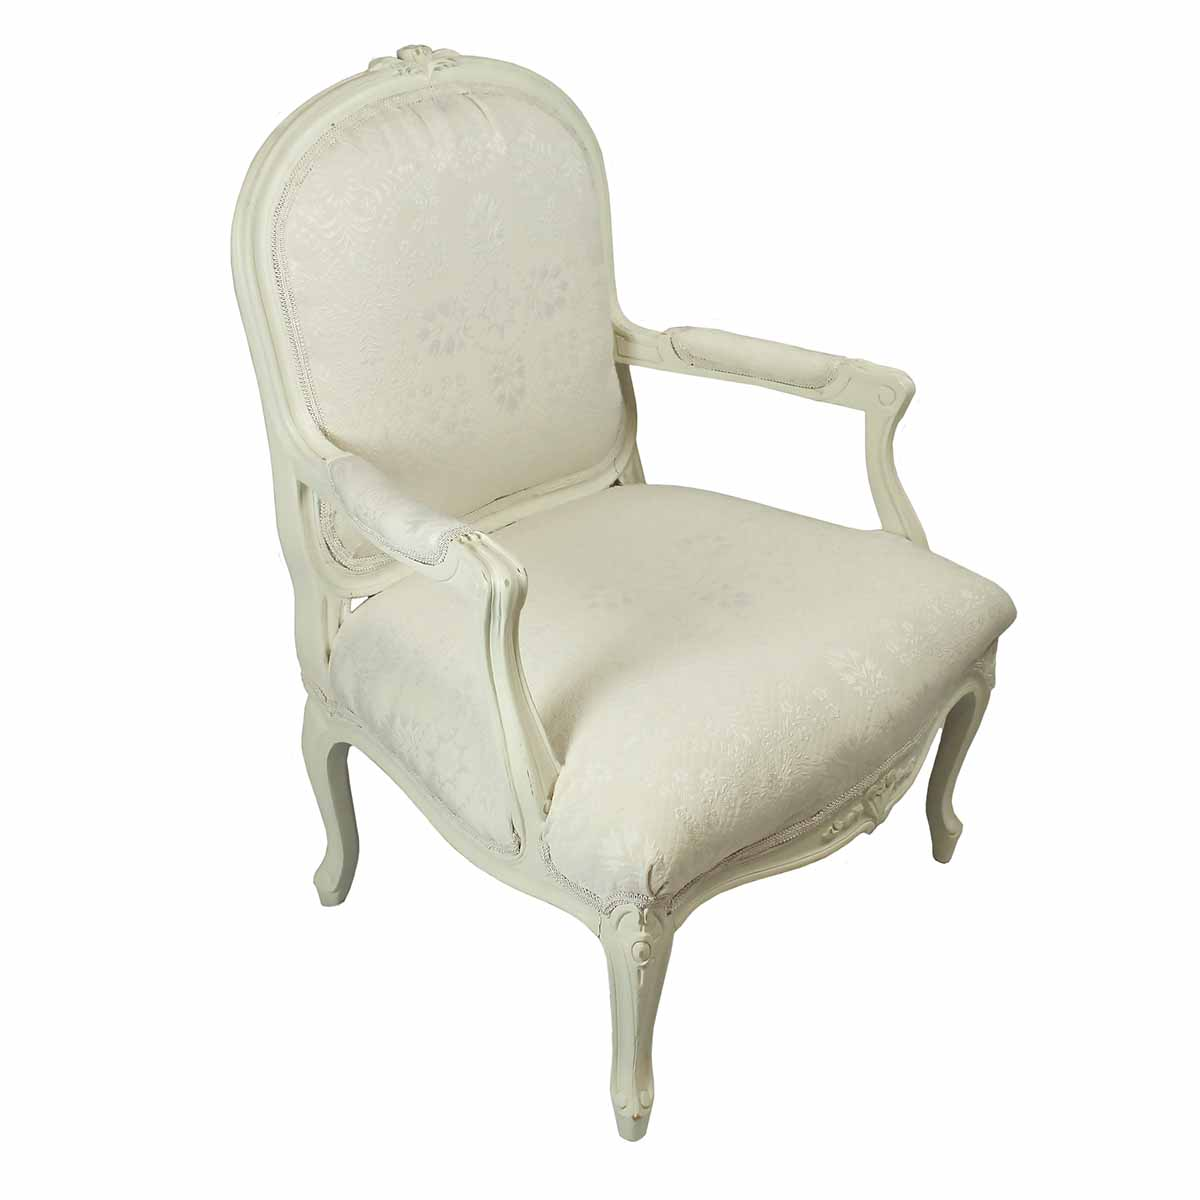 Antique White Throne Chair